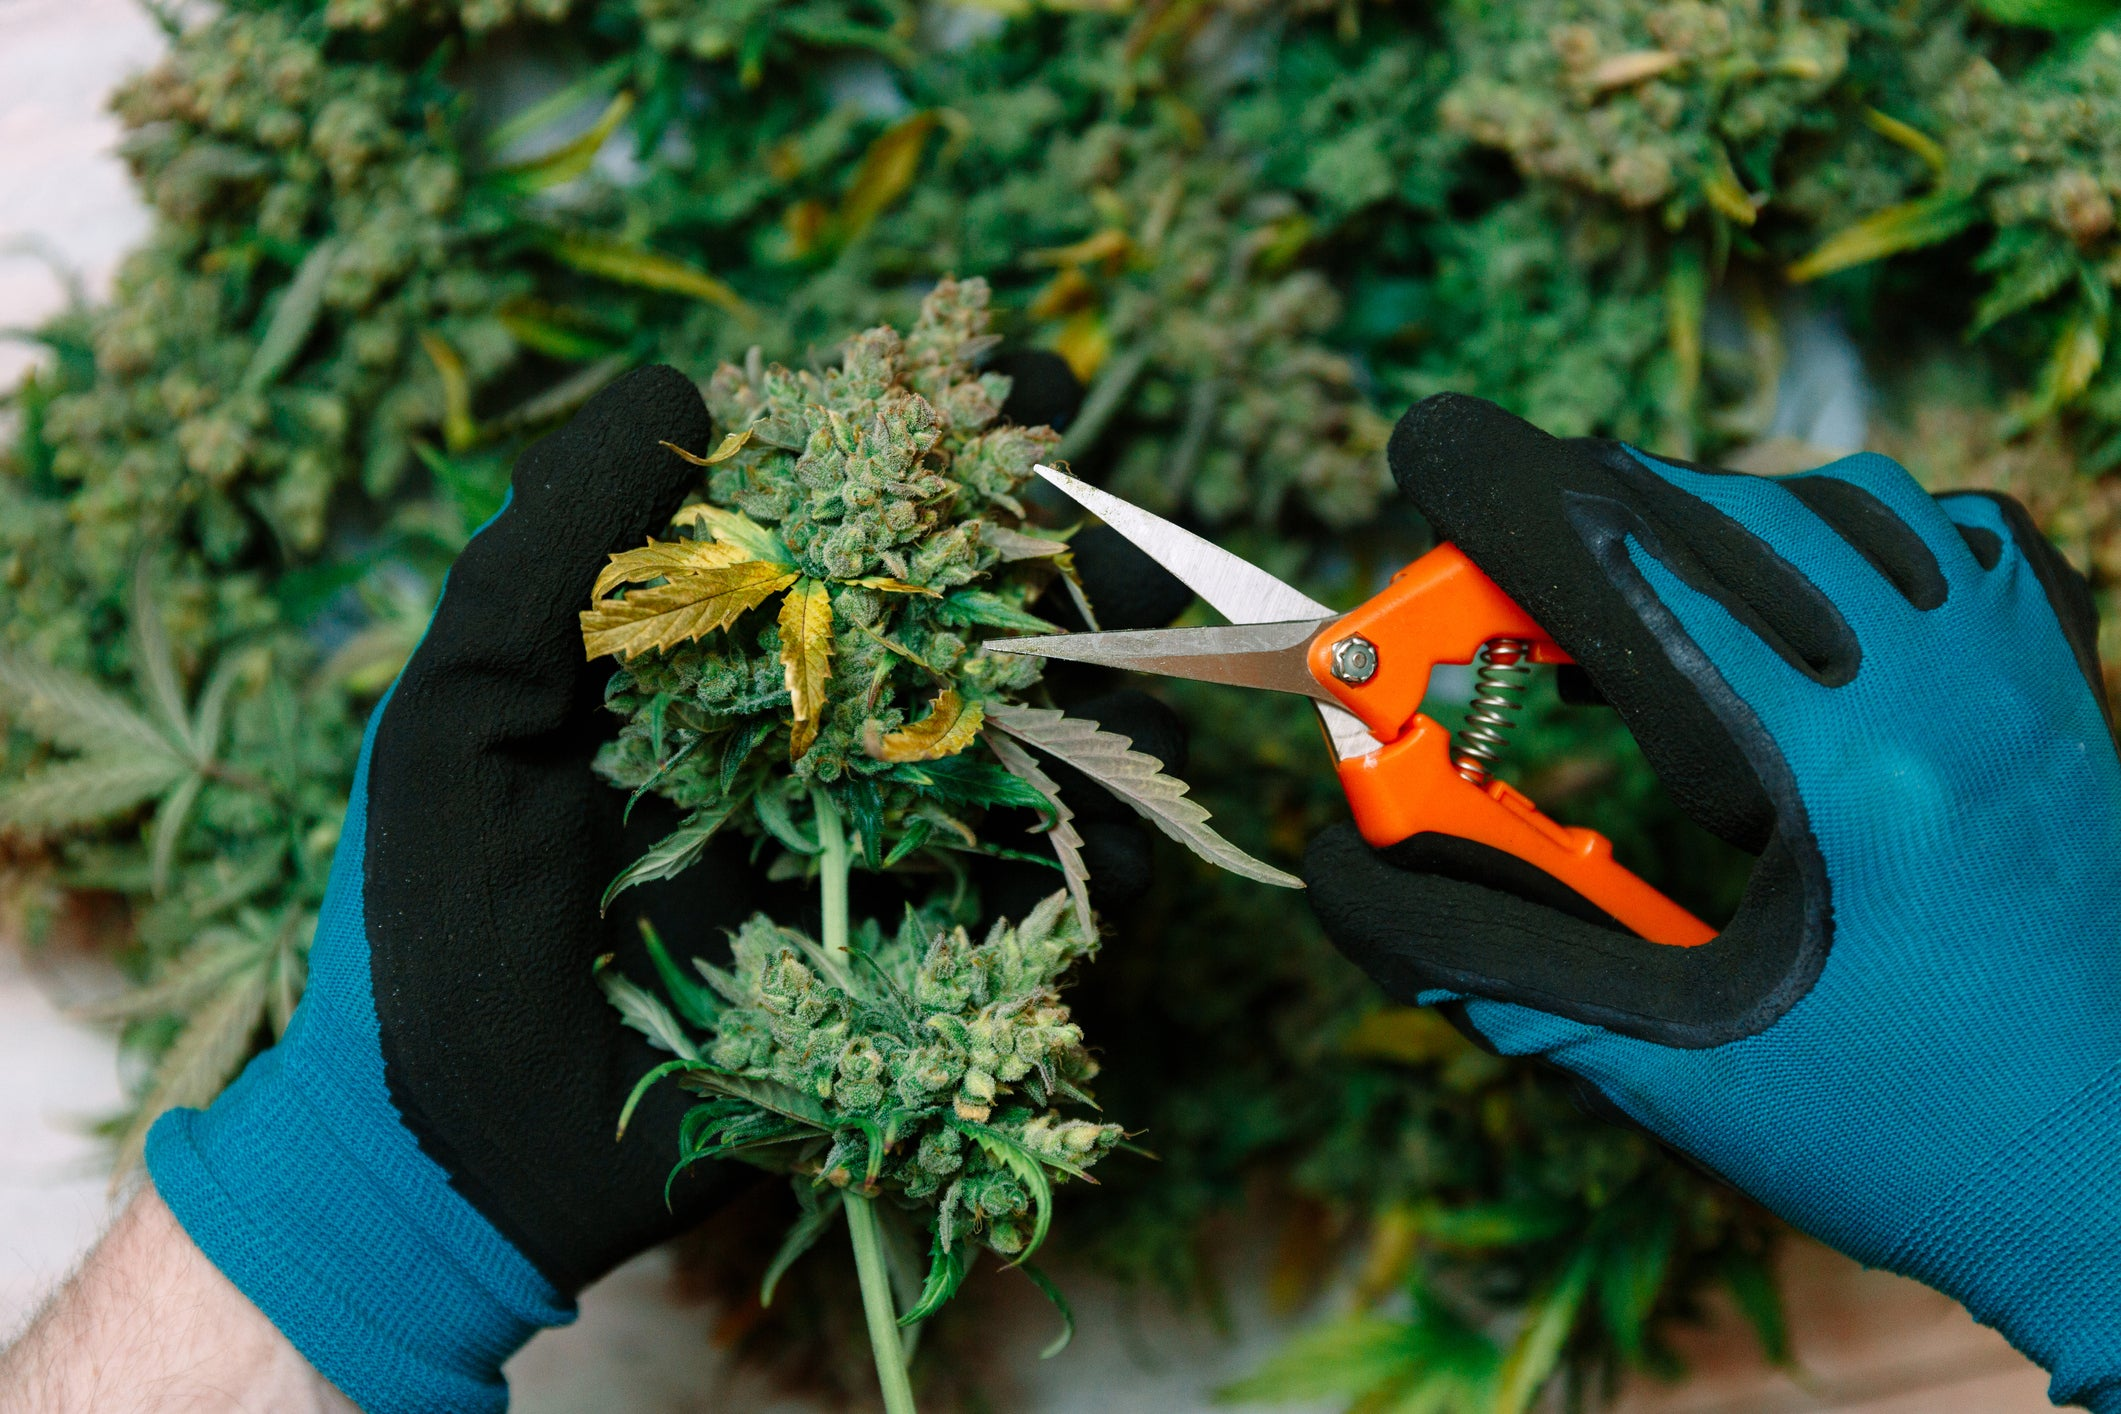 A cannabis processor with scissors trimming a flower.